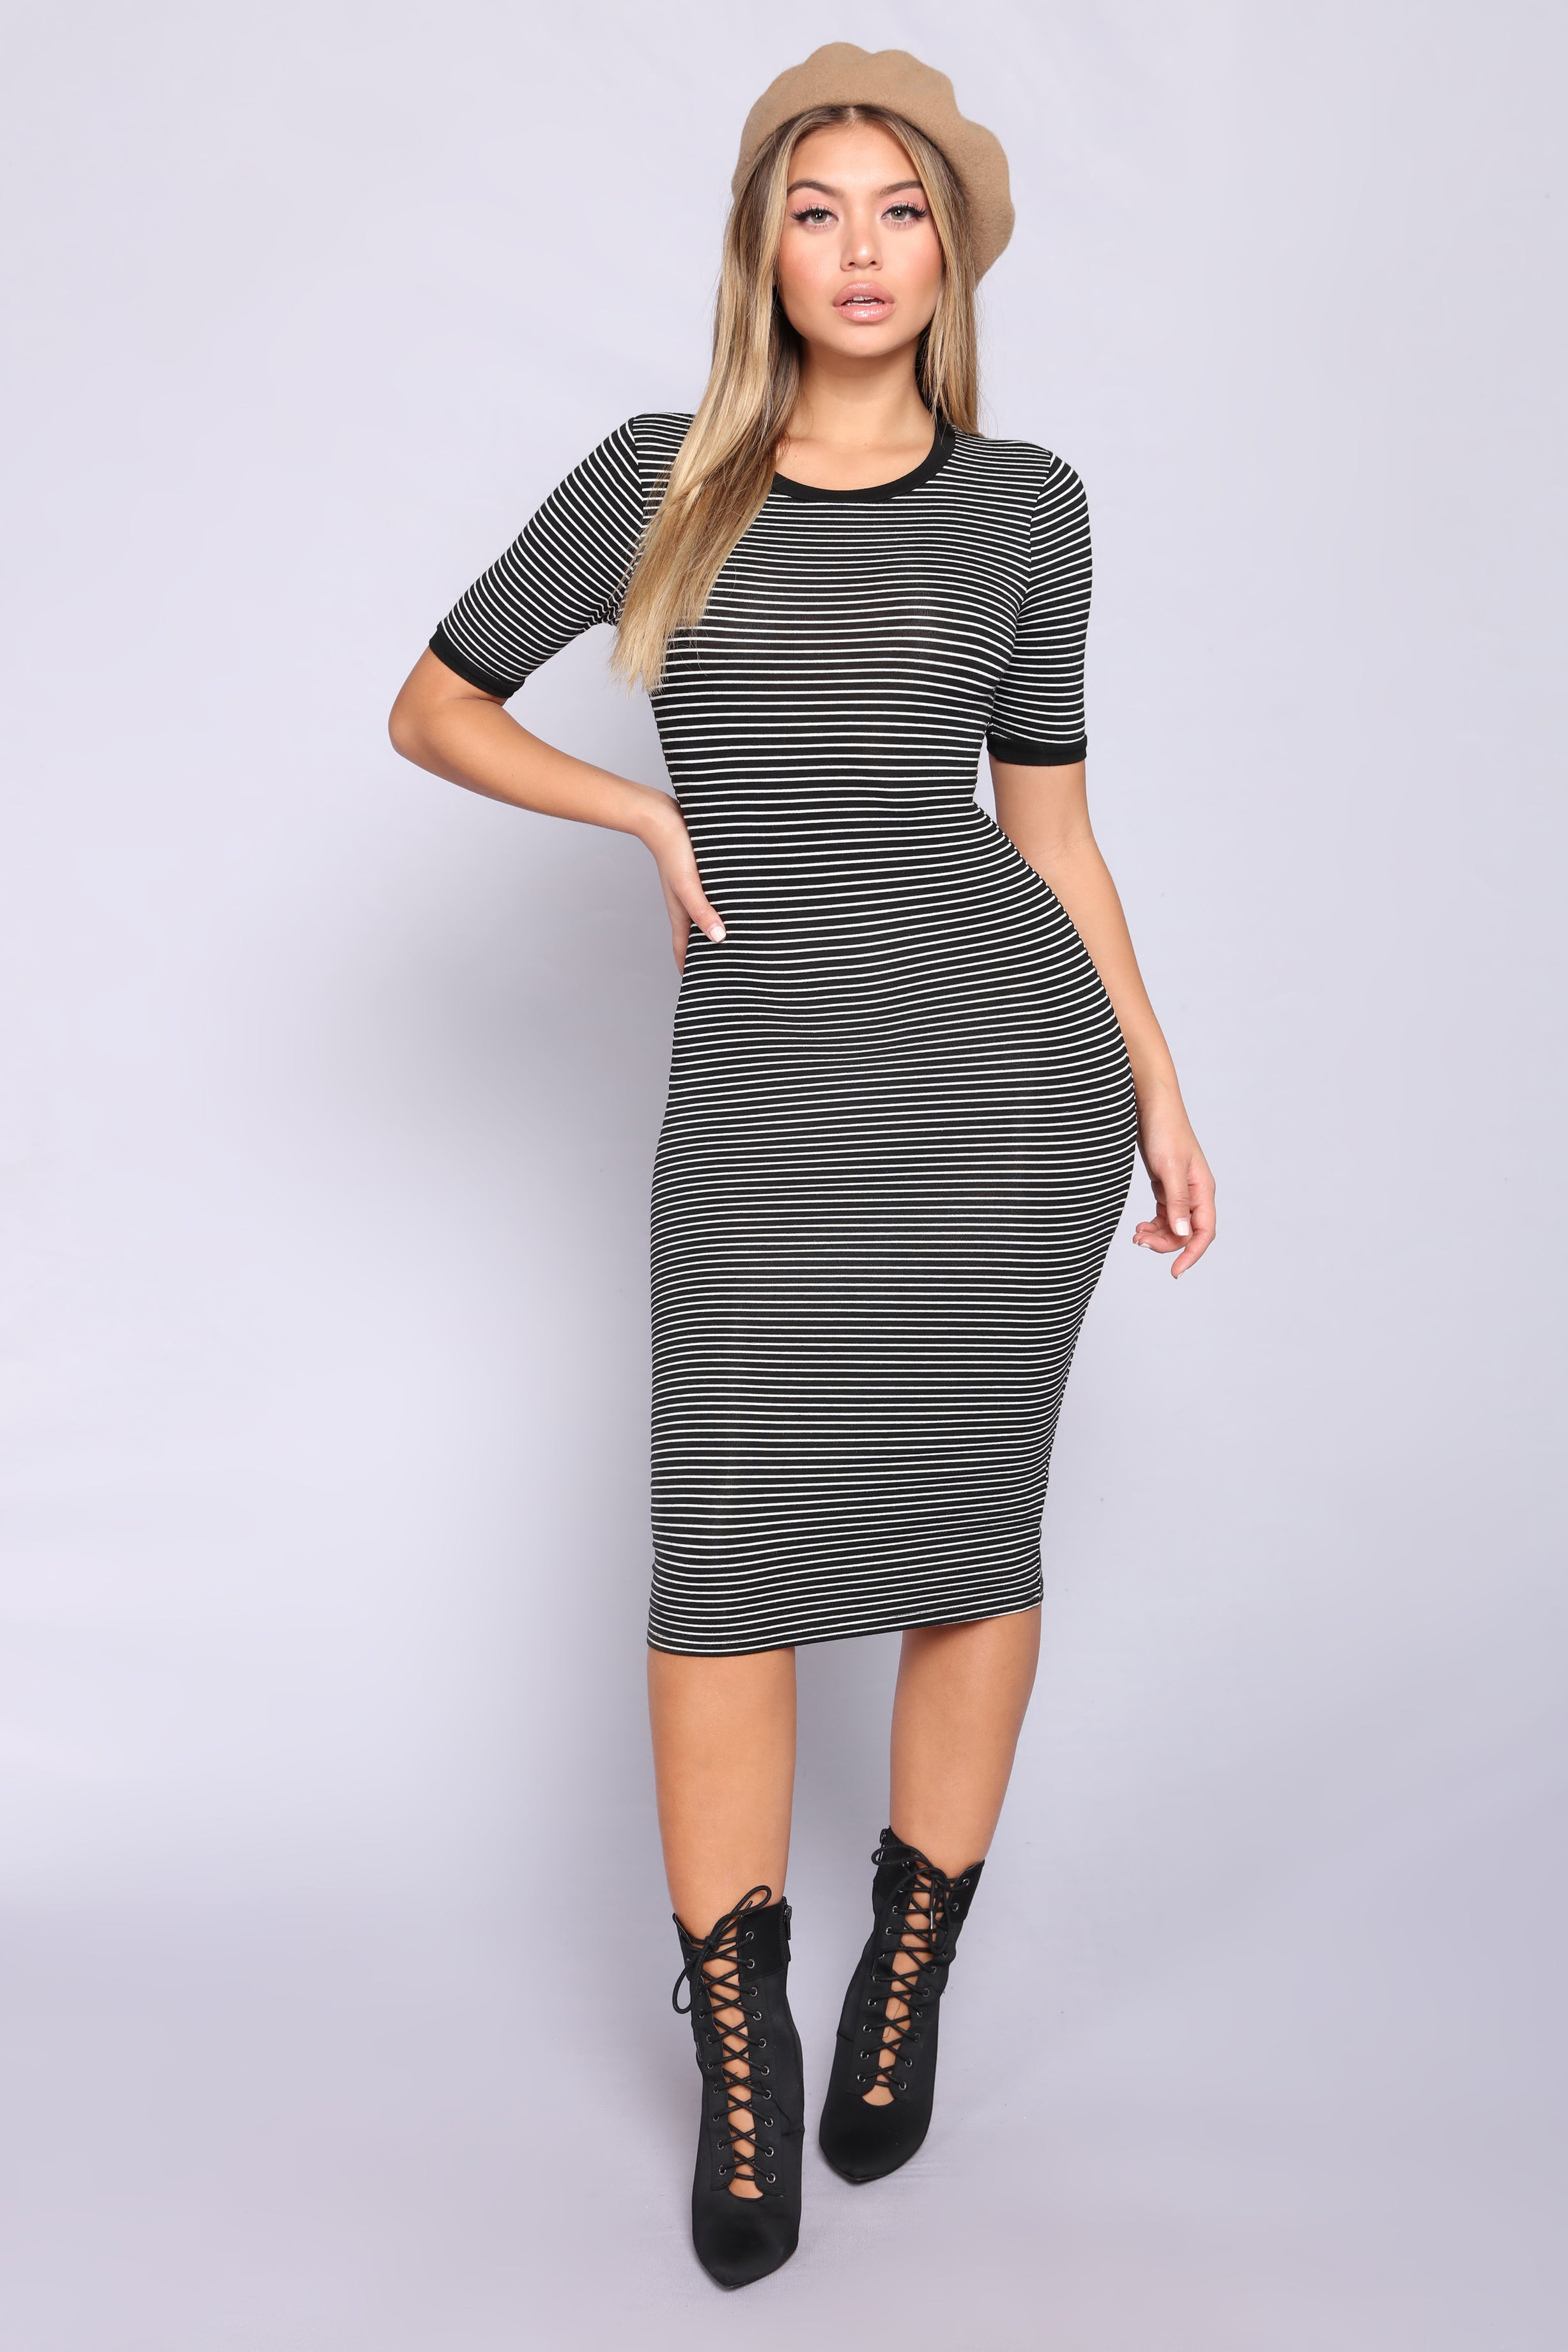 cc951757bd7 Just The Girl Striped Dress - Black White